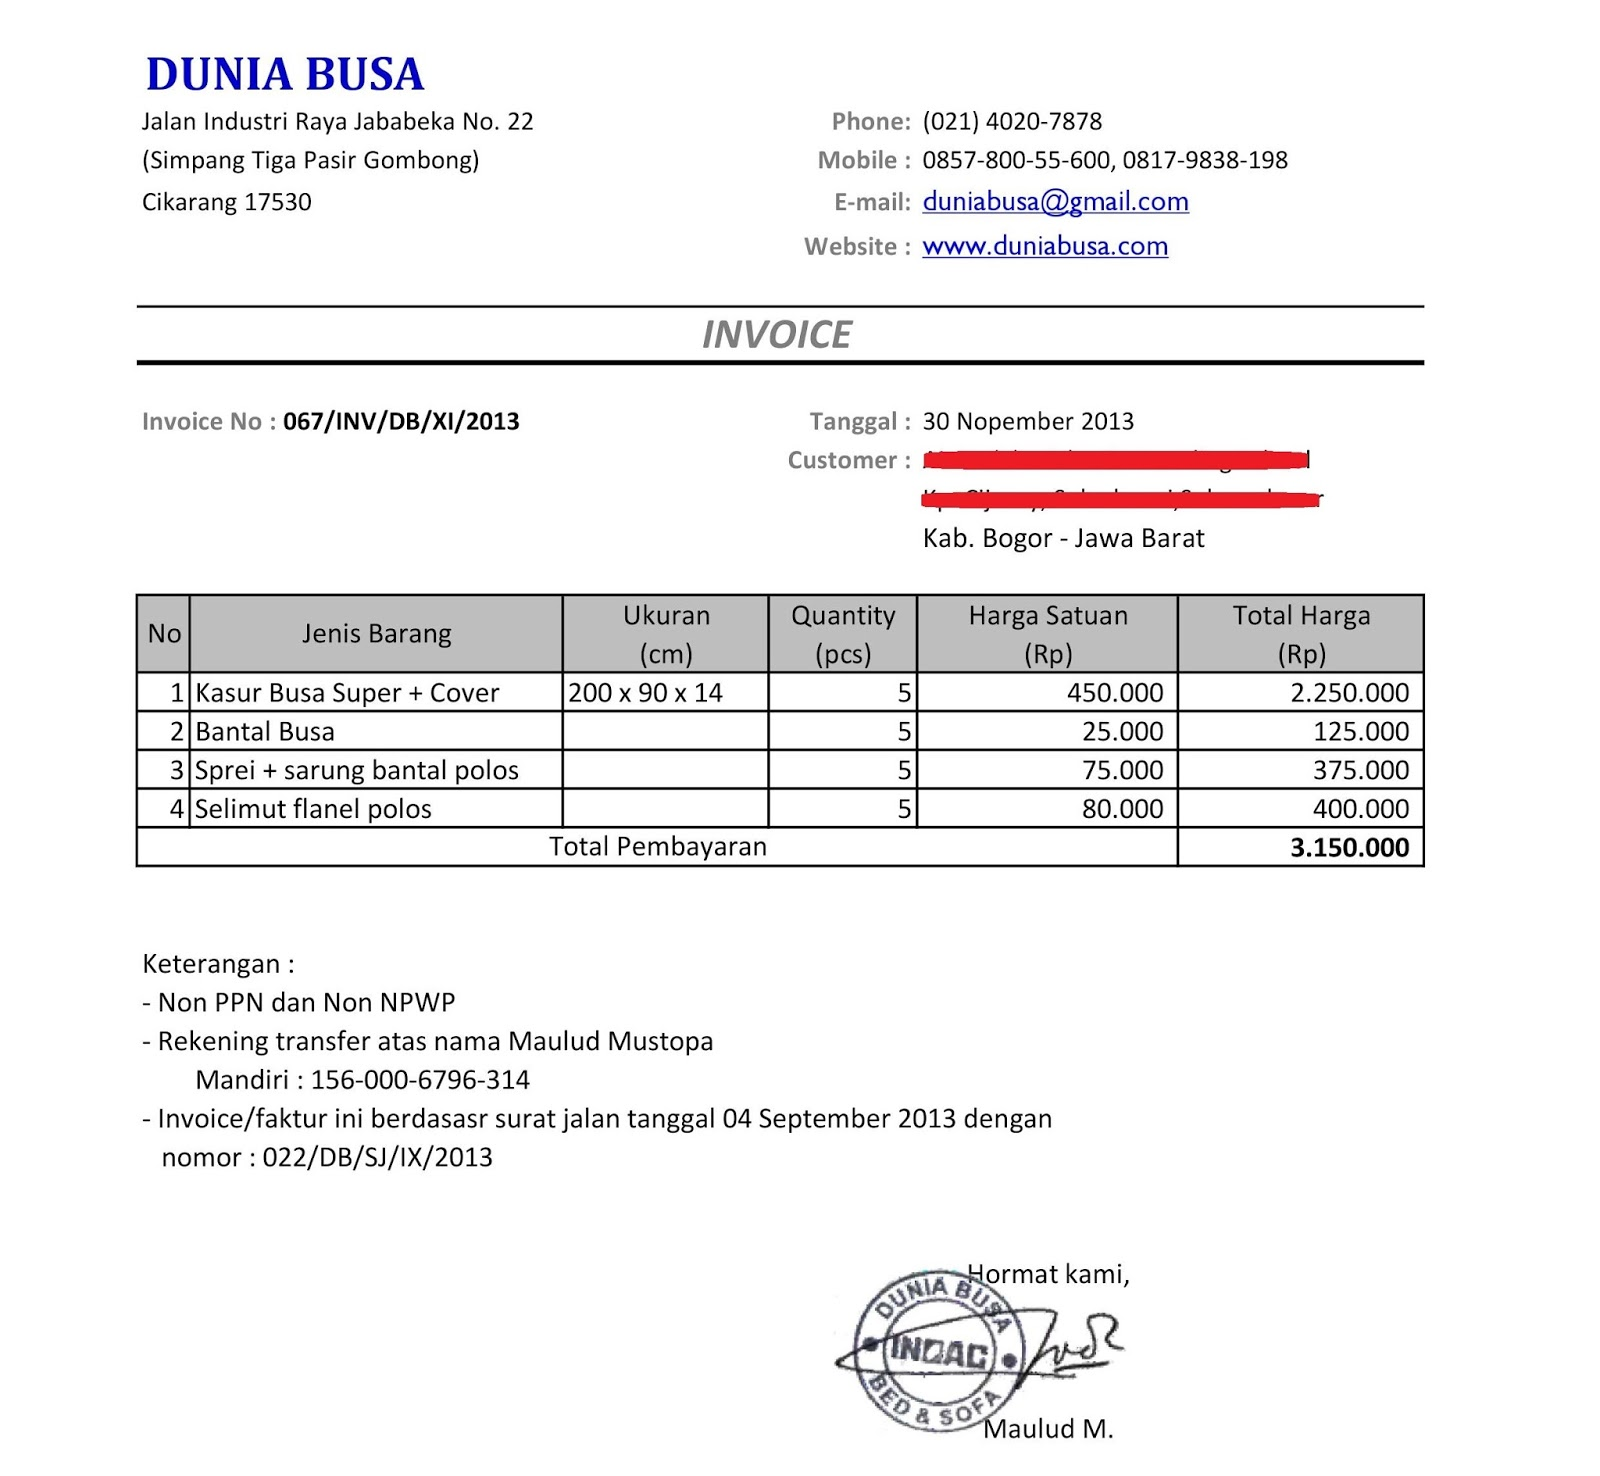 Barneybonesus  Surprising Free Invoice Online  Create Invoice Online  Invoice Template  With Excellent Contoh Format Invoice Atau Surat Tagihan  Brankas Arsip  Free Invoice Online With Nice How To Make An Invoice On Paypal Also Free Printable Invoice Template In Addition Vehicle Invoice Price And Invoice Excel Template As Well As Pdf Invoice Additionally Invoice Date From Sklepco With Barneybonesus  Excellent Free Invoice Online  Create Invoice Online  Invoice Template  With Nice Contoh Format Invoice Atau Surat Tagihan  Brankas Arsip  Free Invoice Online And Surprising How To Make An Invoice On Paypal Also Free Printable Invoice Template In Addition Vehicle Invoice Price From Sklepco